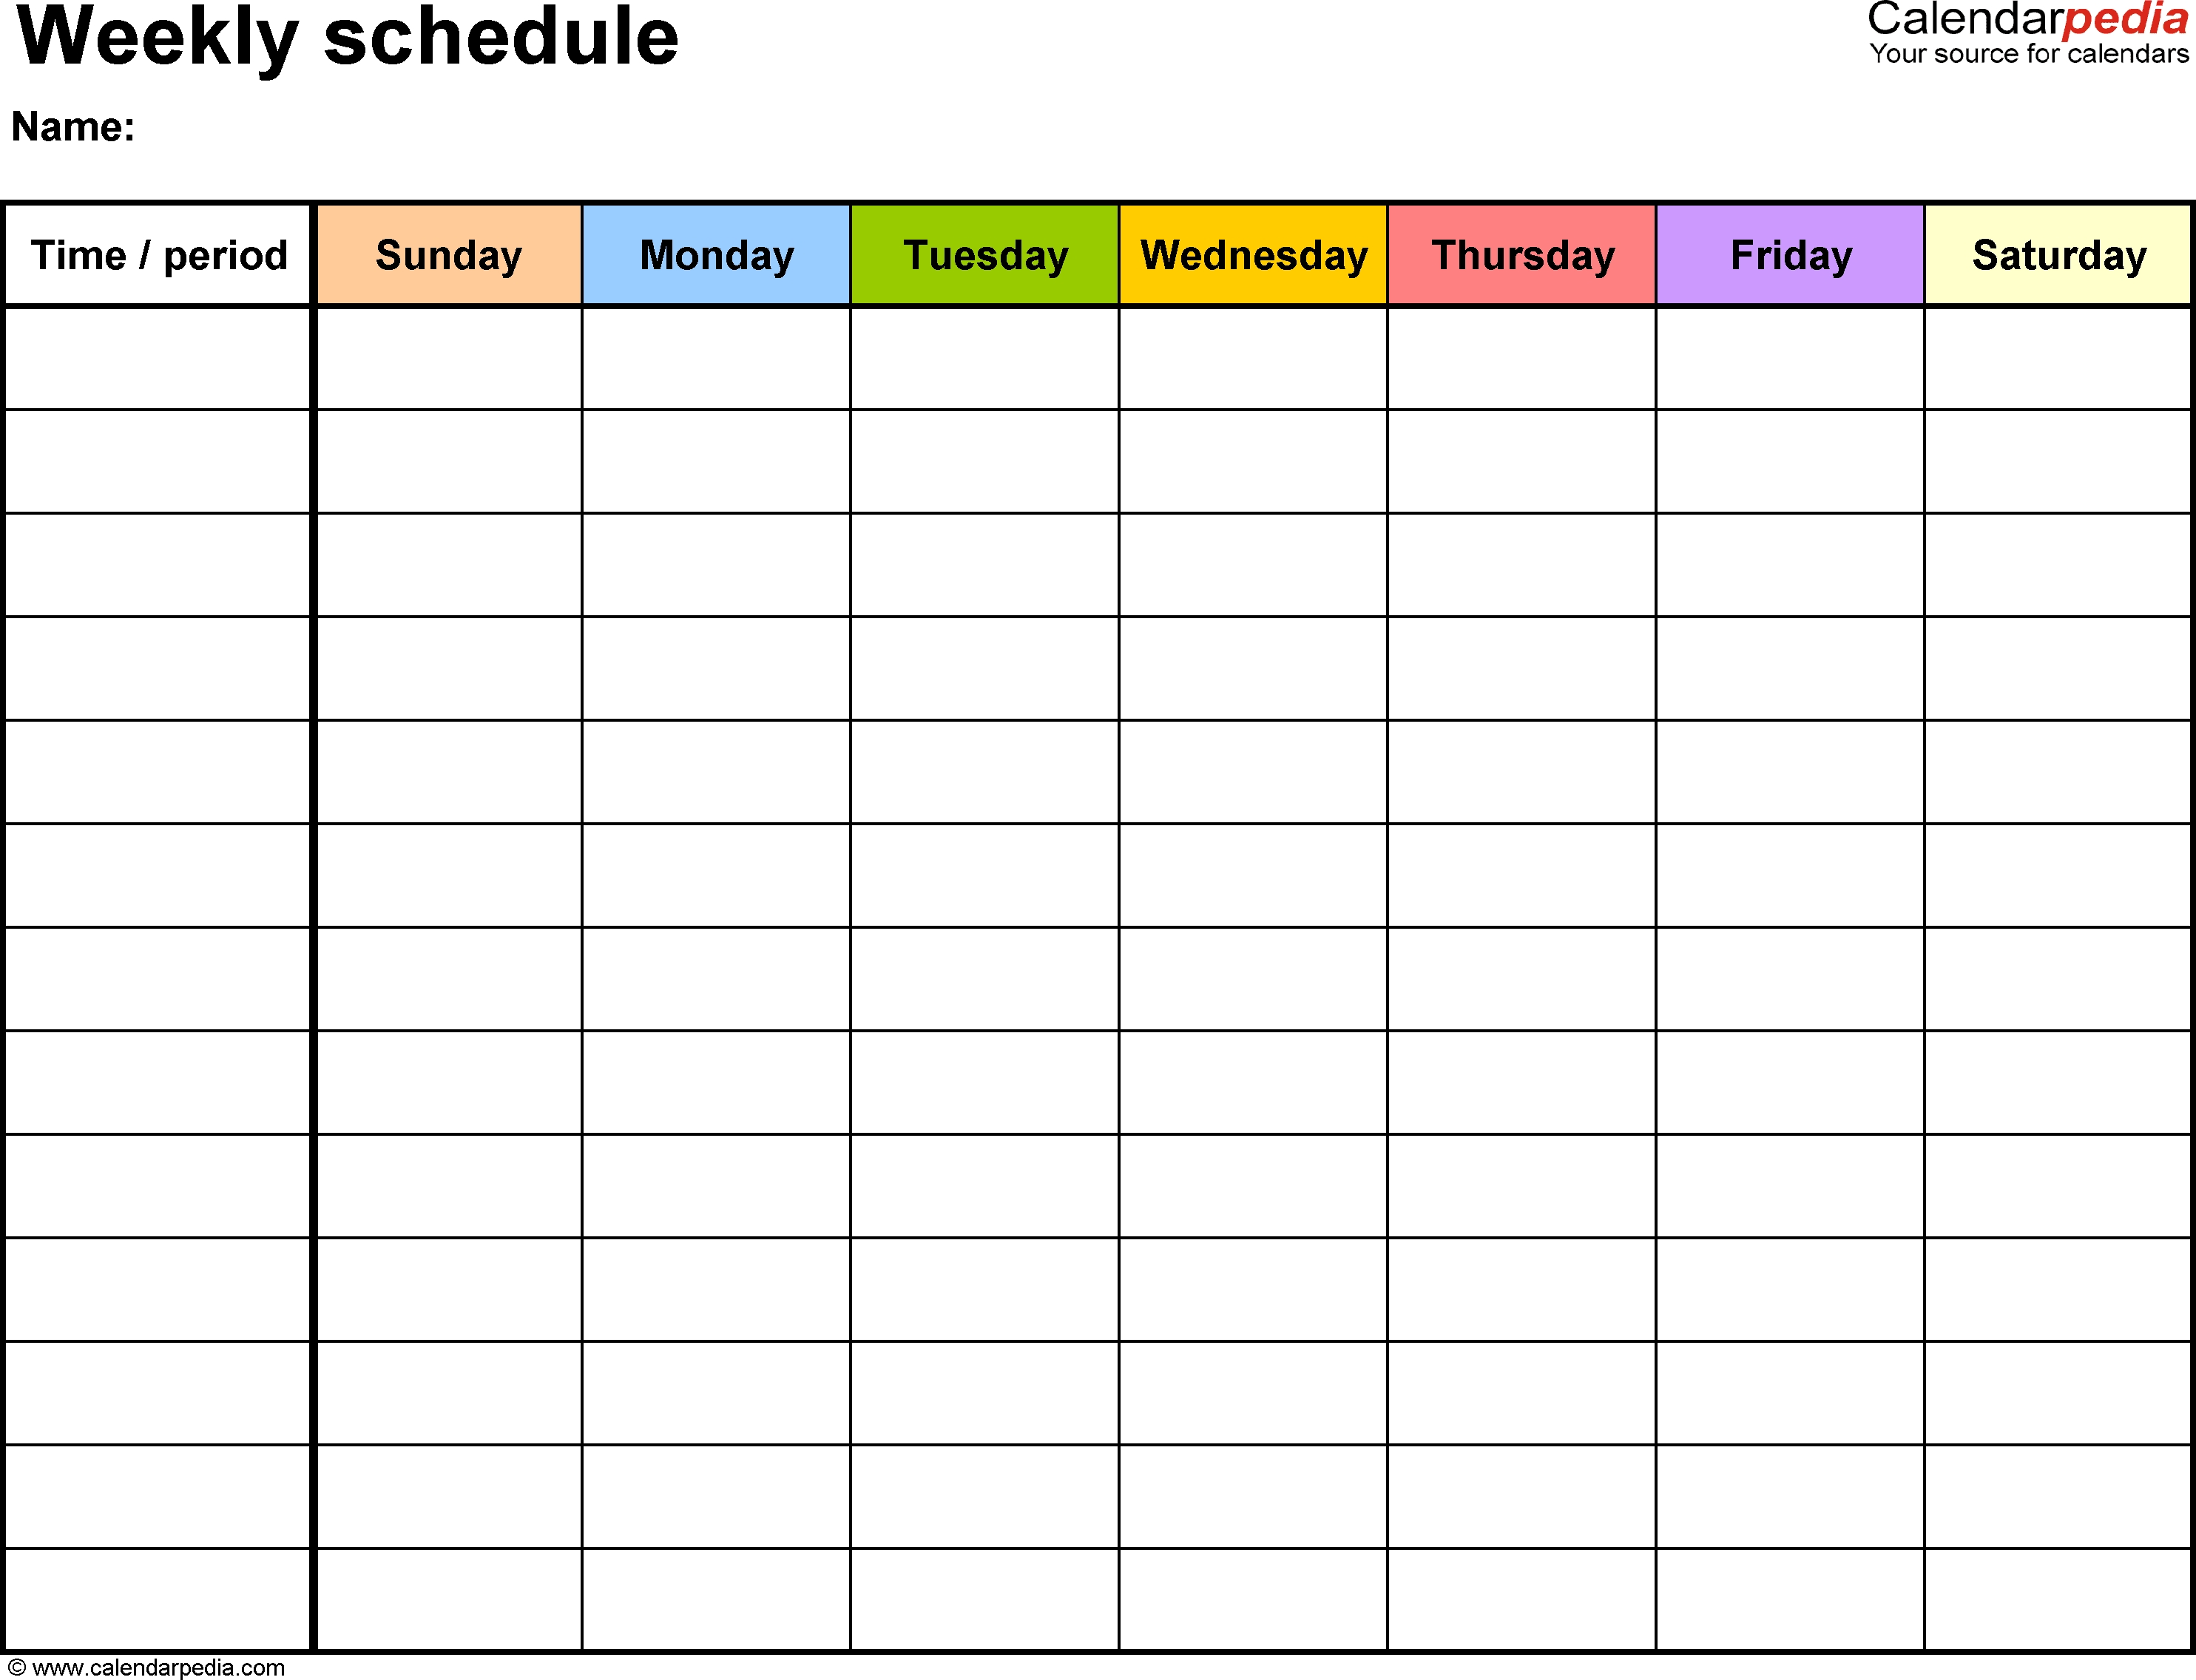 Free Weekly Schedule Templates For Word - 18 Templates  Free Printable Weekly Calendar Templates